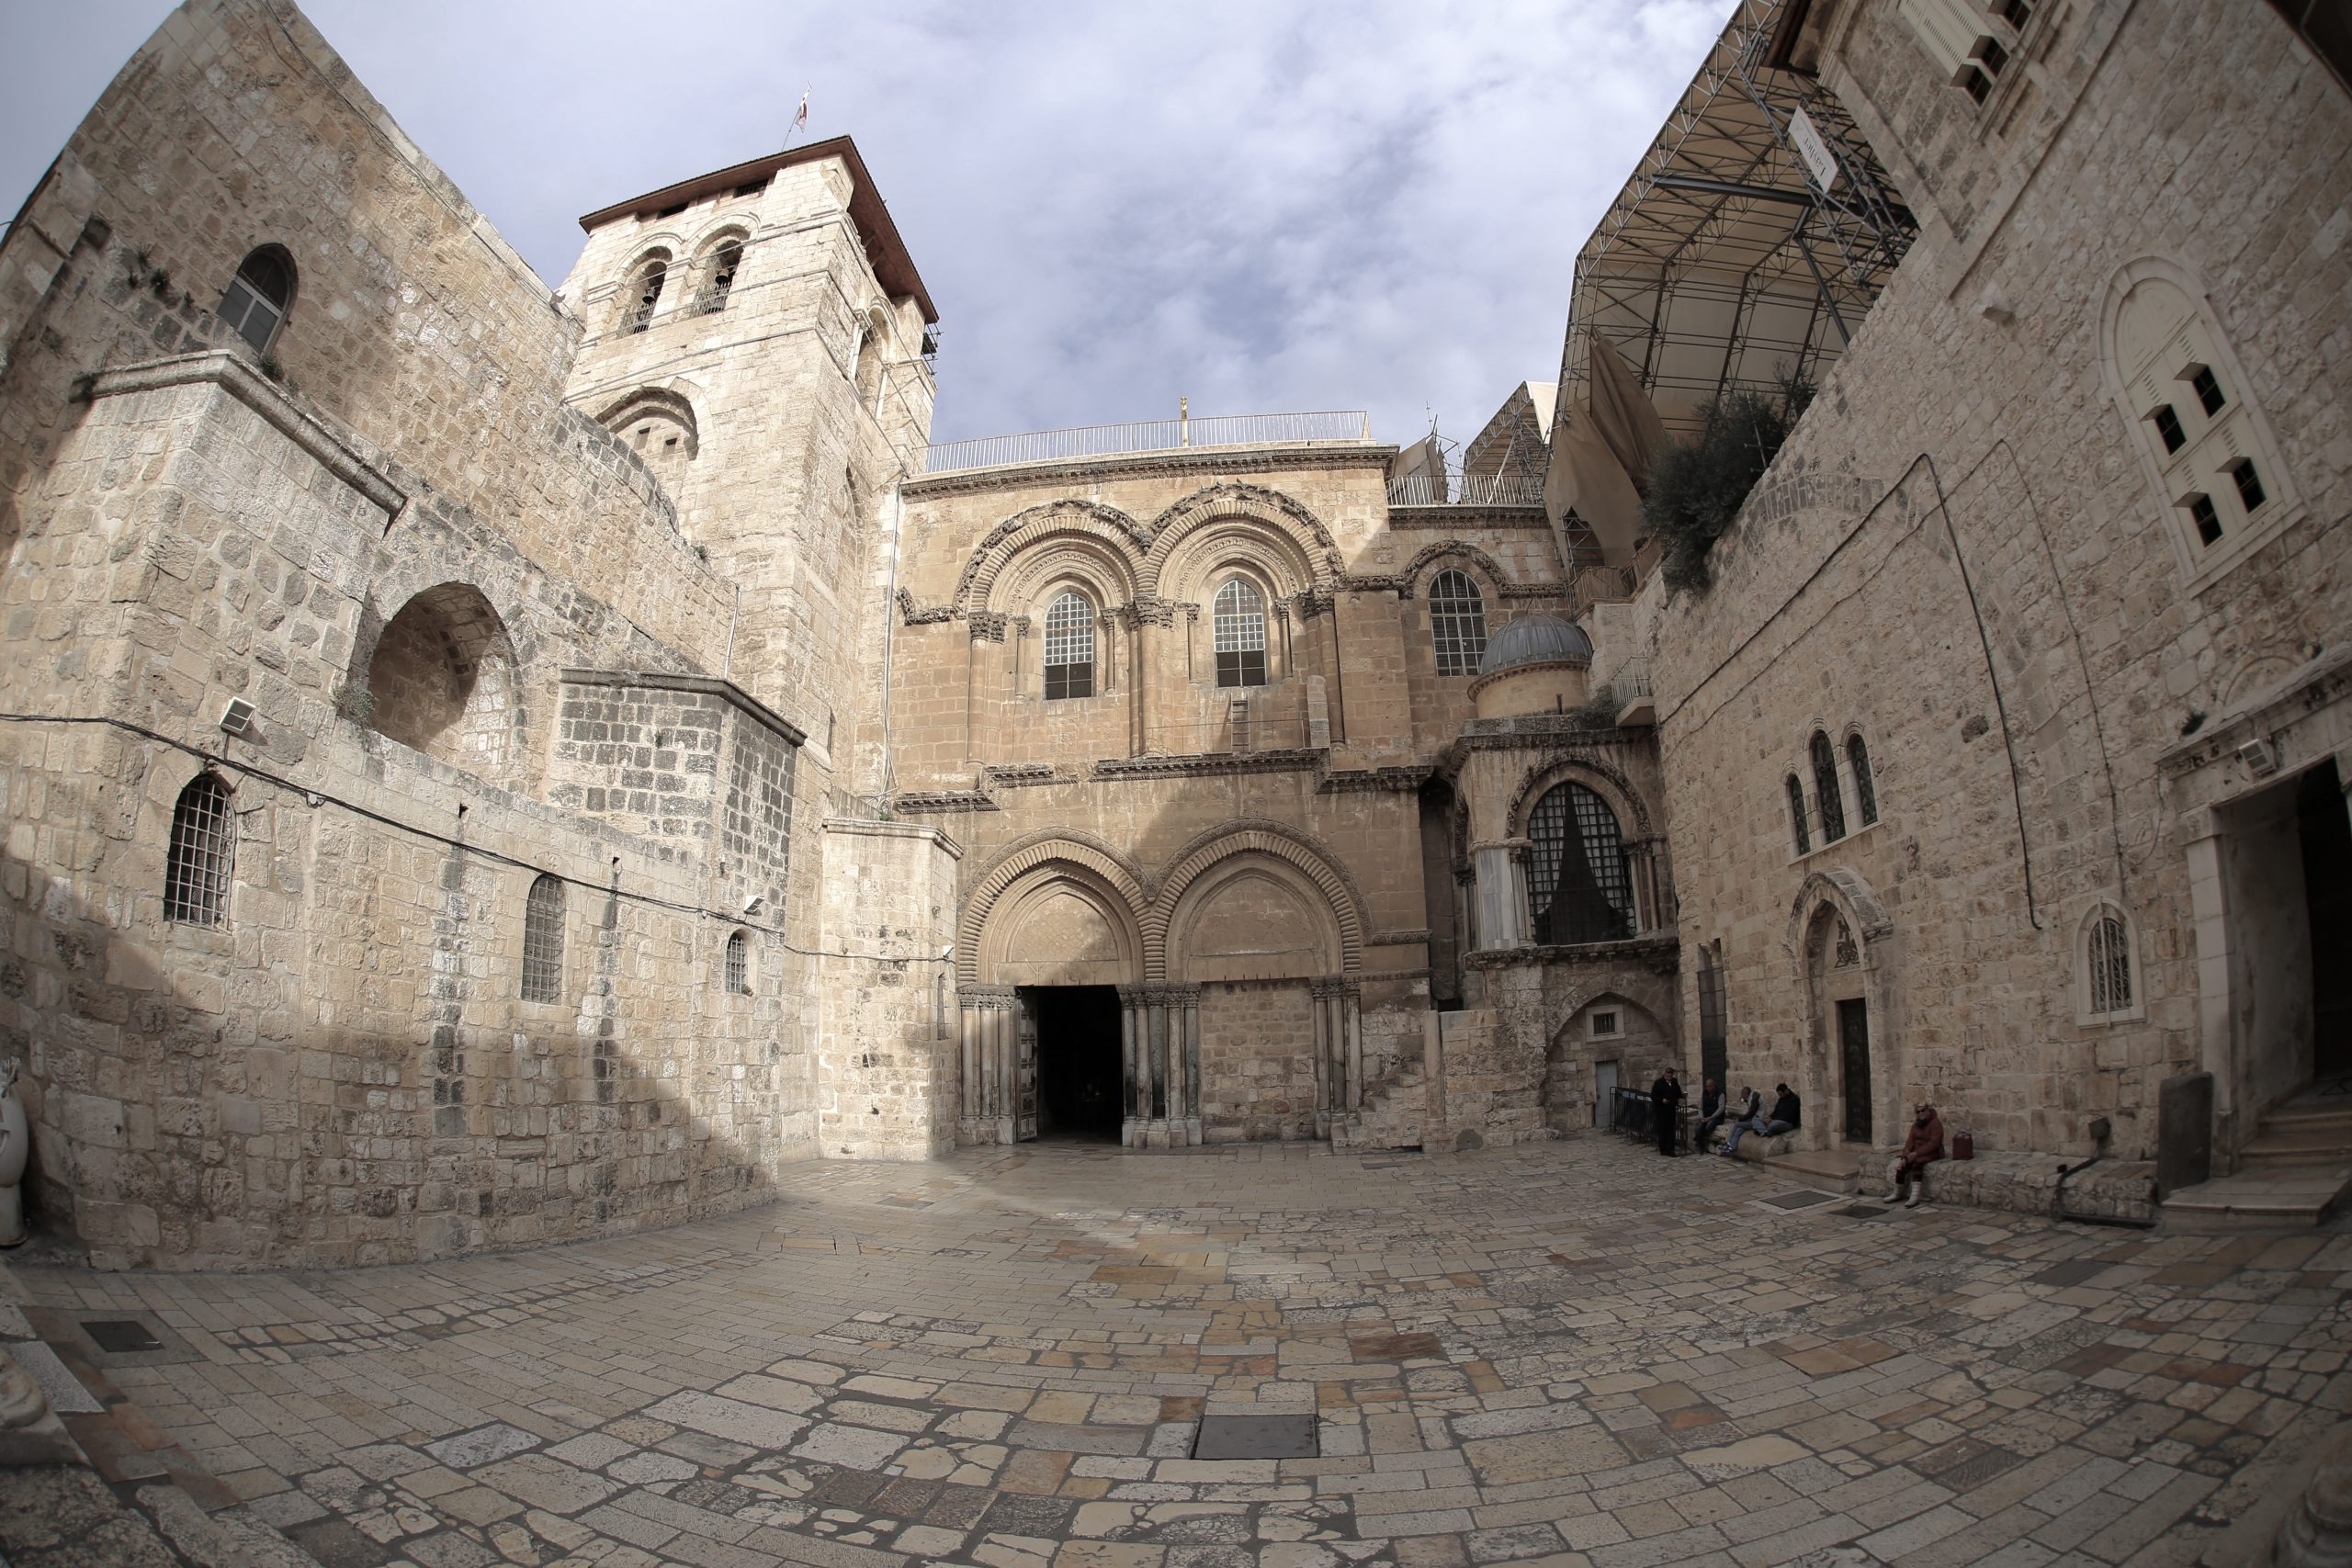 Church of the Holy Sepulchre, Old City of Jerusalem